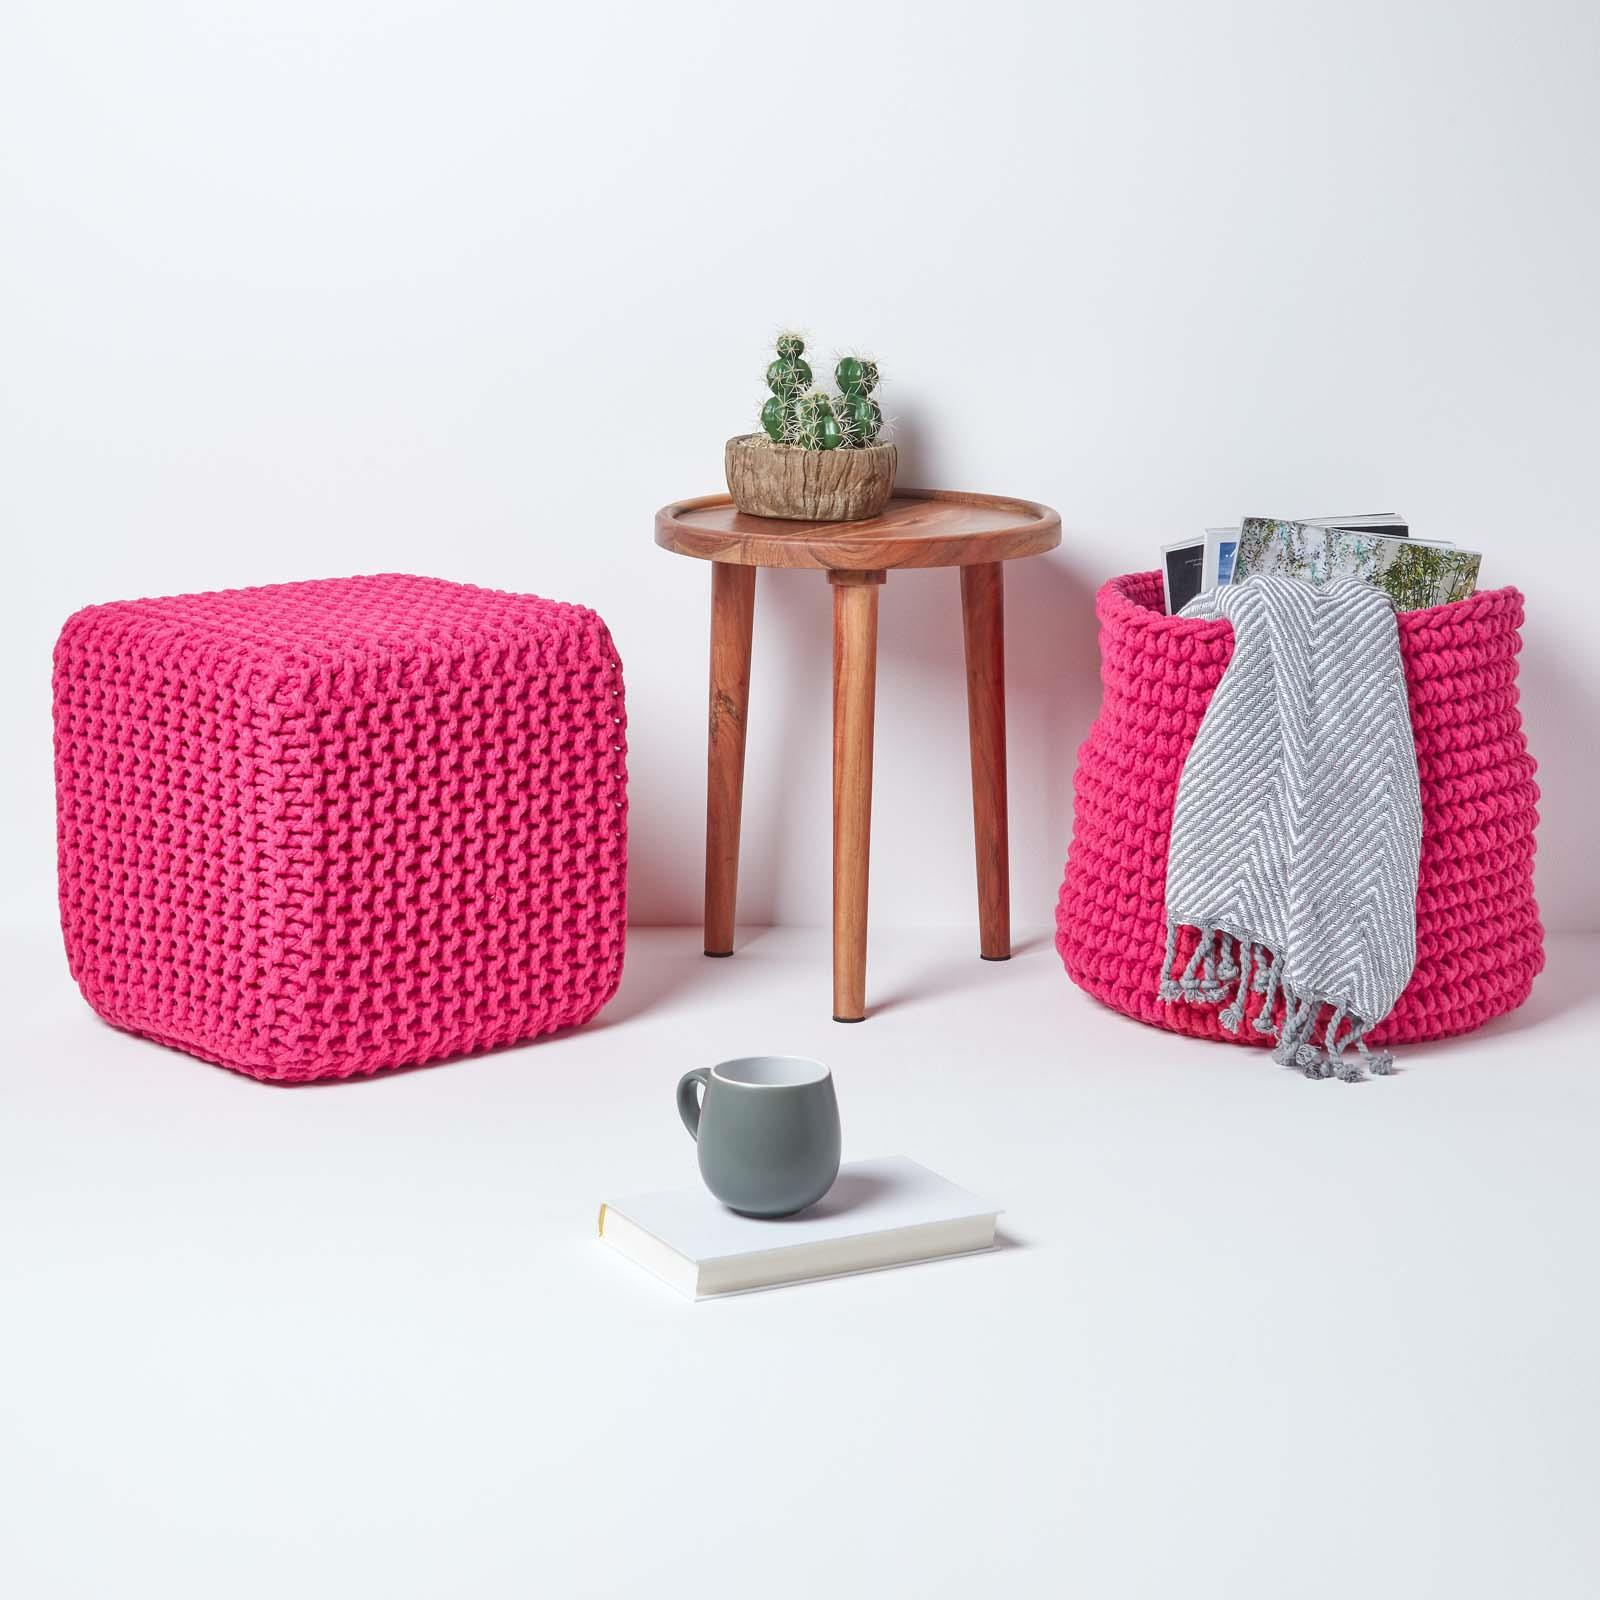 Hand-Knitted-100-Cotton-Pouffes-Round-Sphere-Or-Cube-Square-Chunky-Footstools thumbnail 72